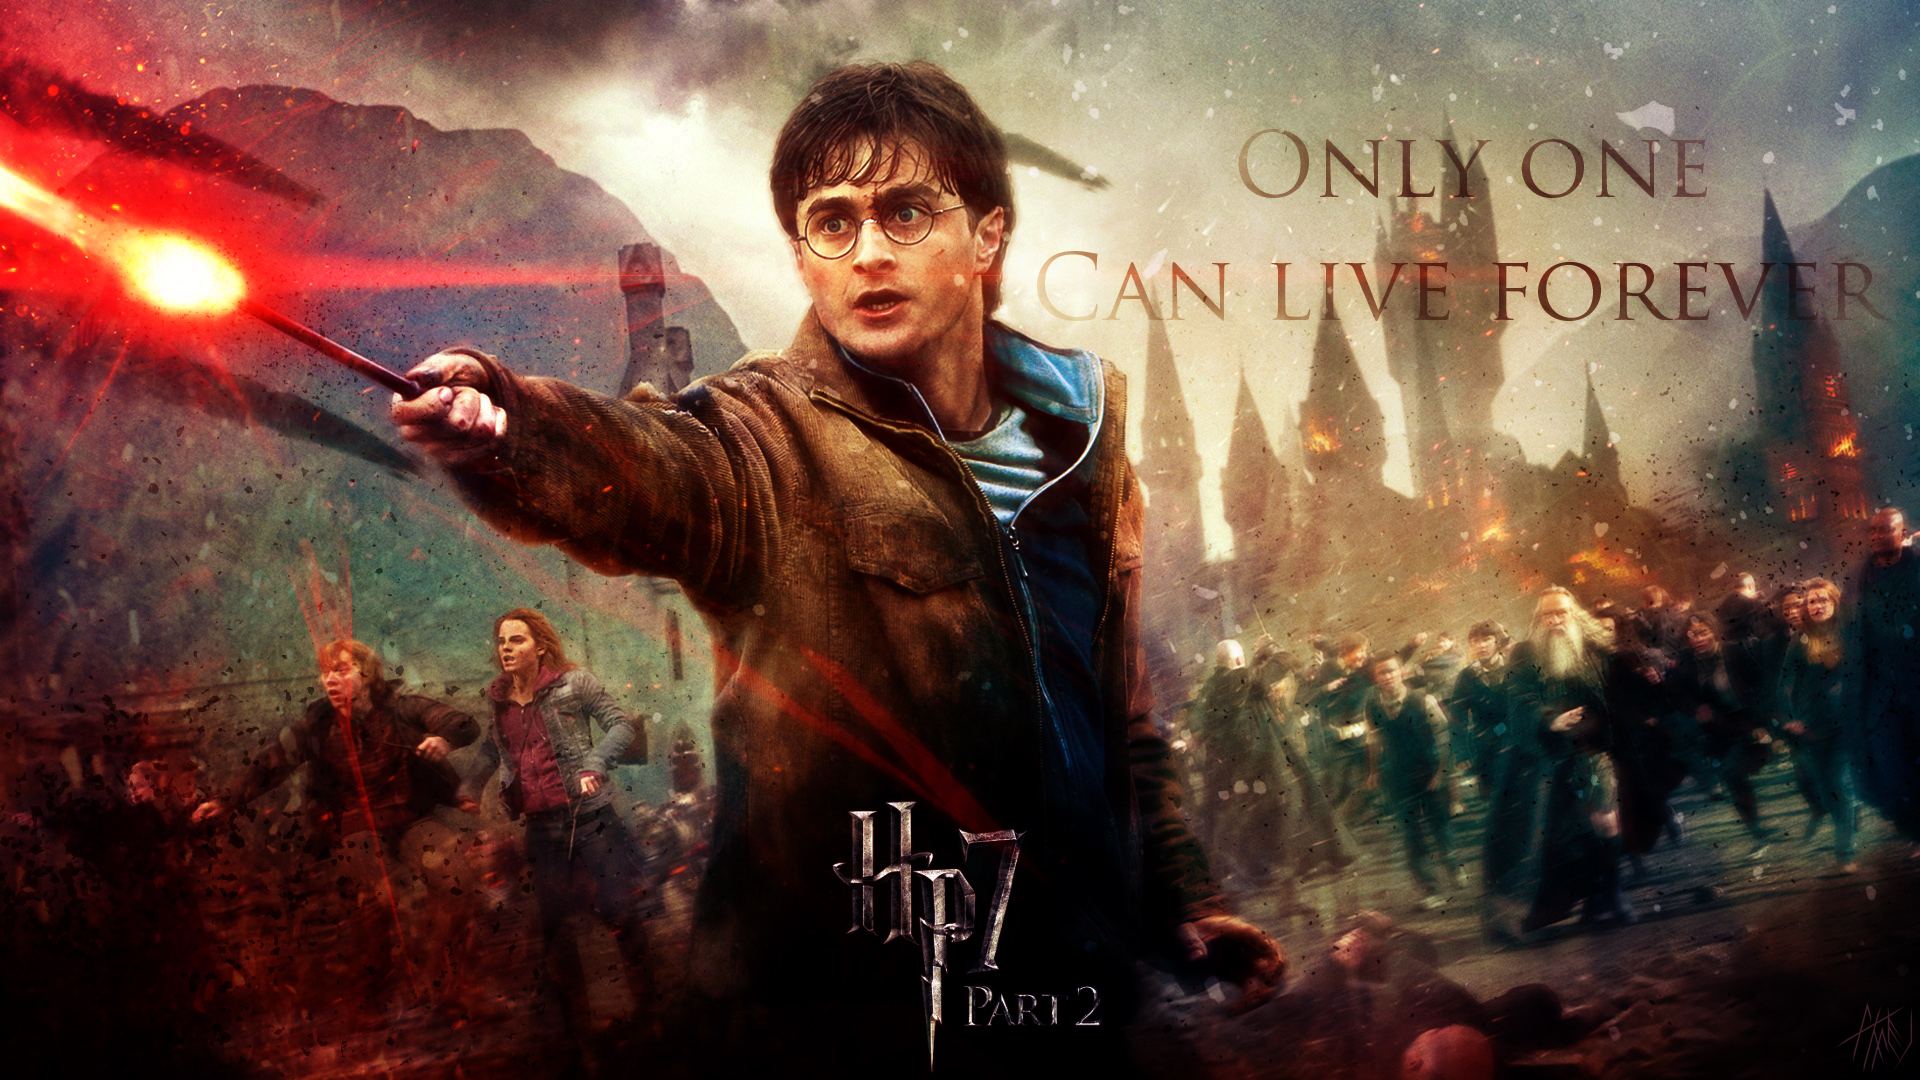 Harry Potter Wallpapers ♥ - Harry Potter Harry Potter And The Deathly Hallows Part - HD Wallpaper